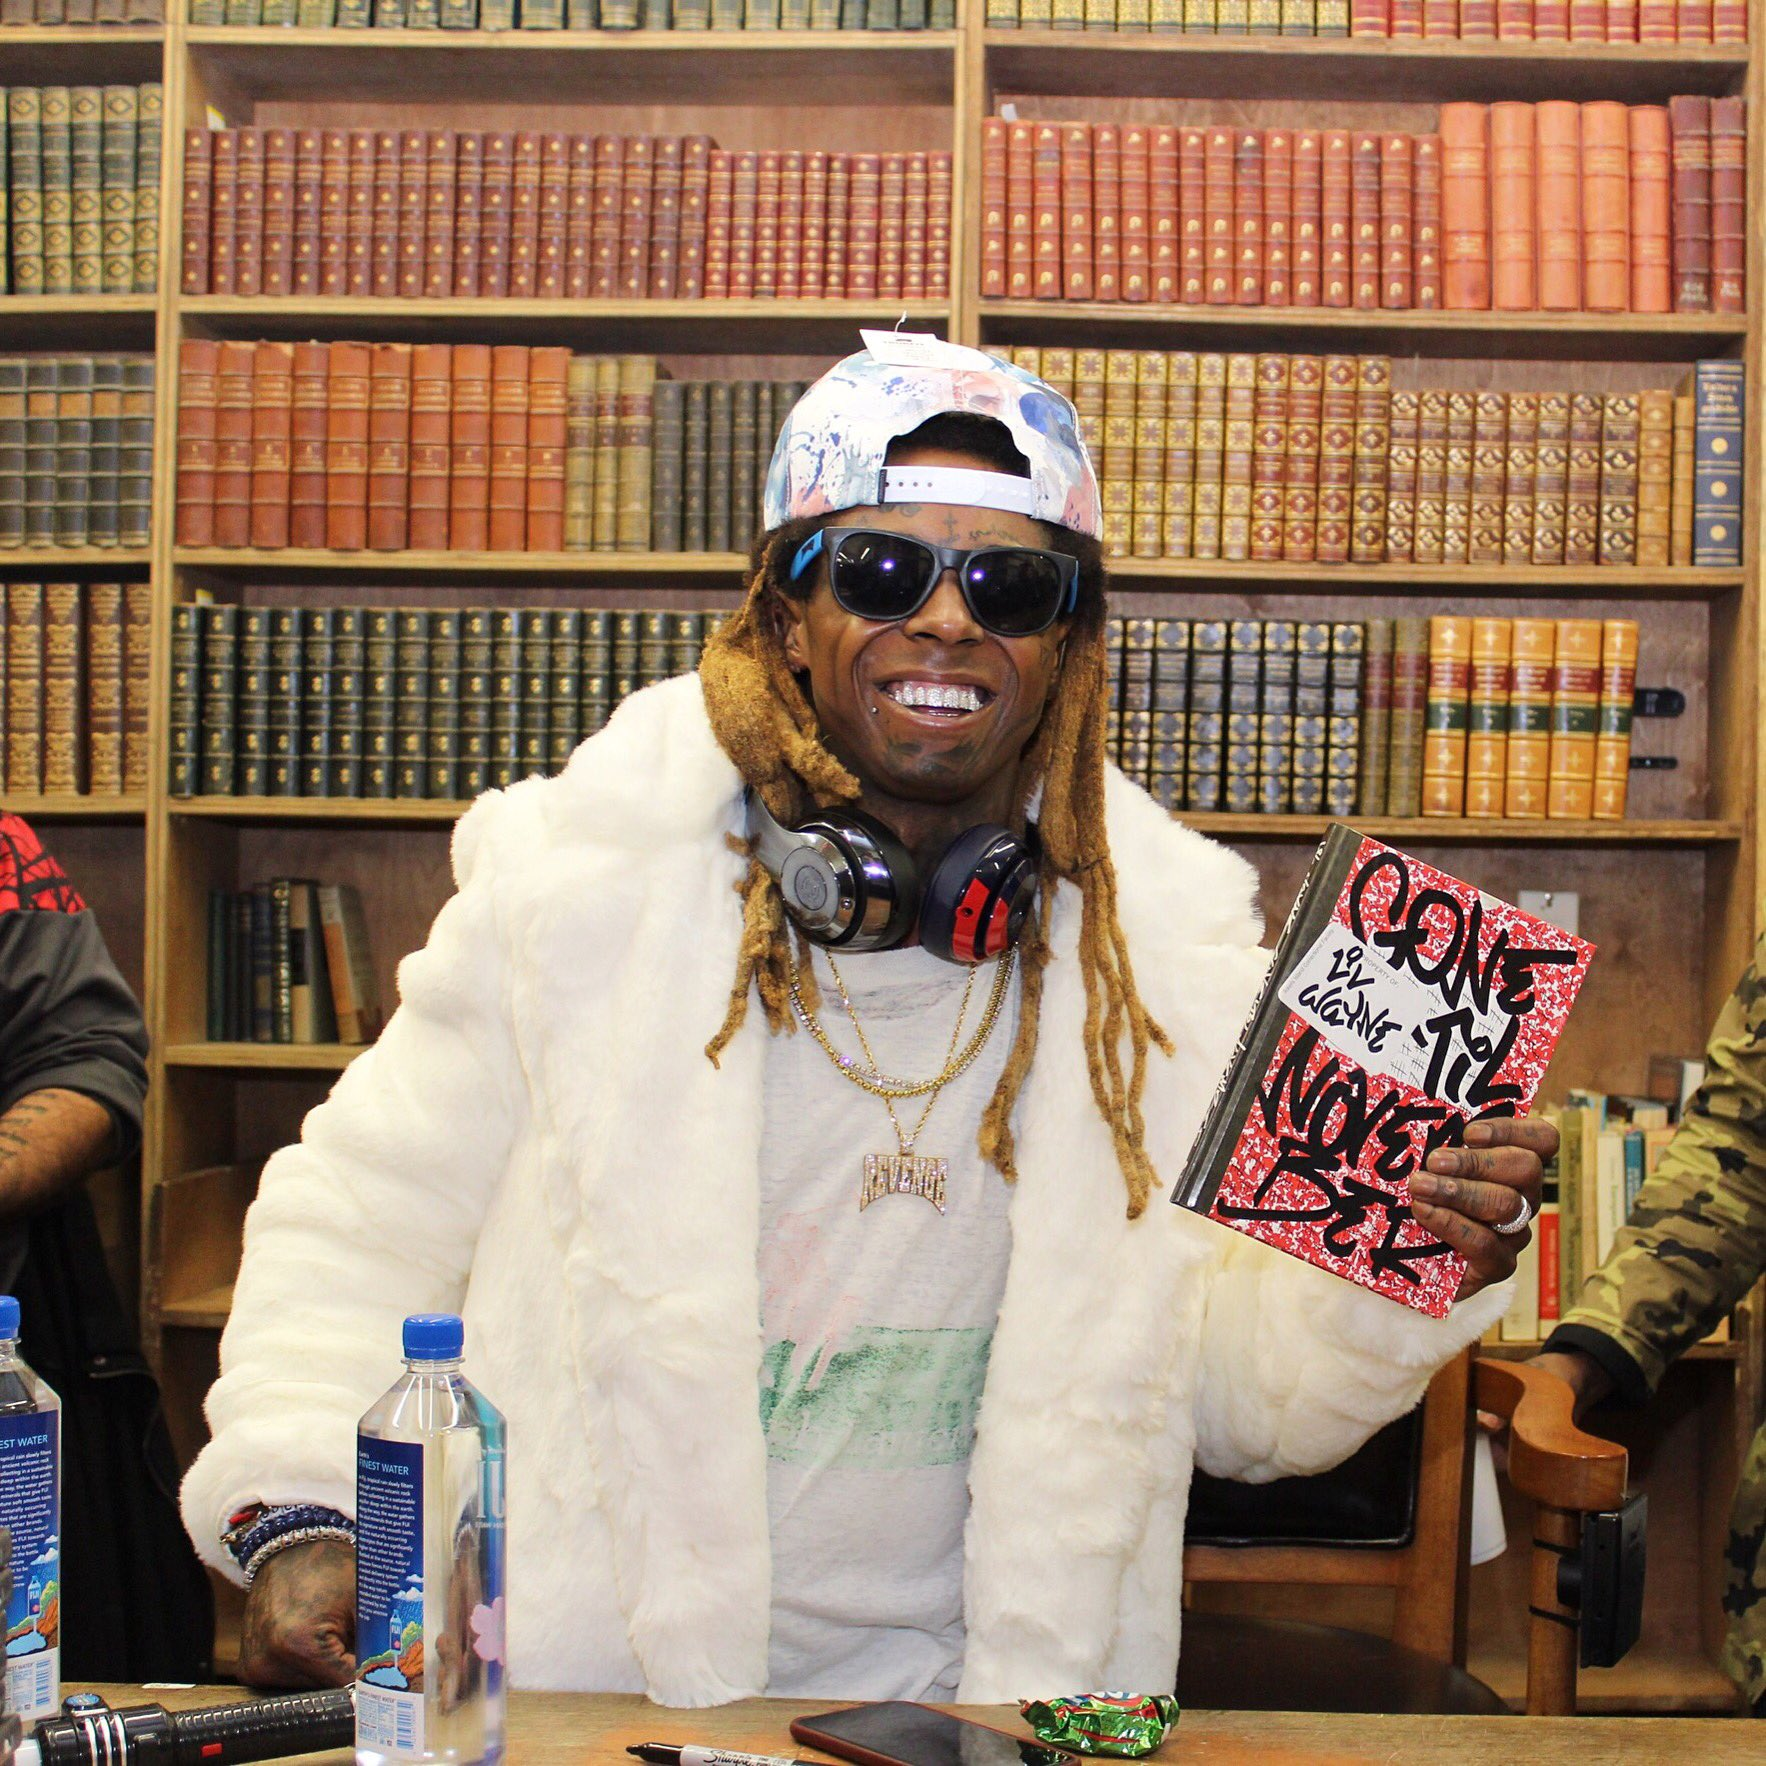 tfw you get to spend the afternoon w @LilTunechi 😁😁 https://t.co/mc8LG9a1lU